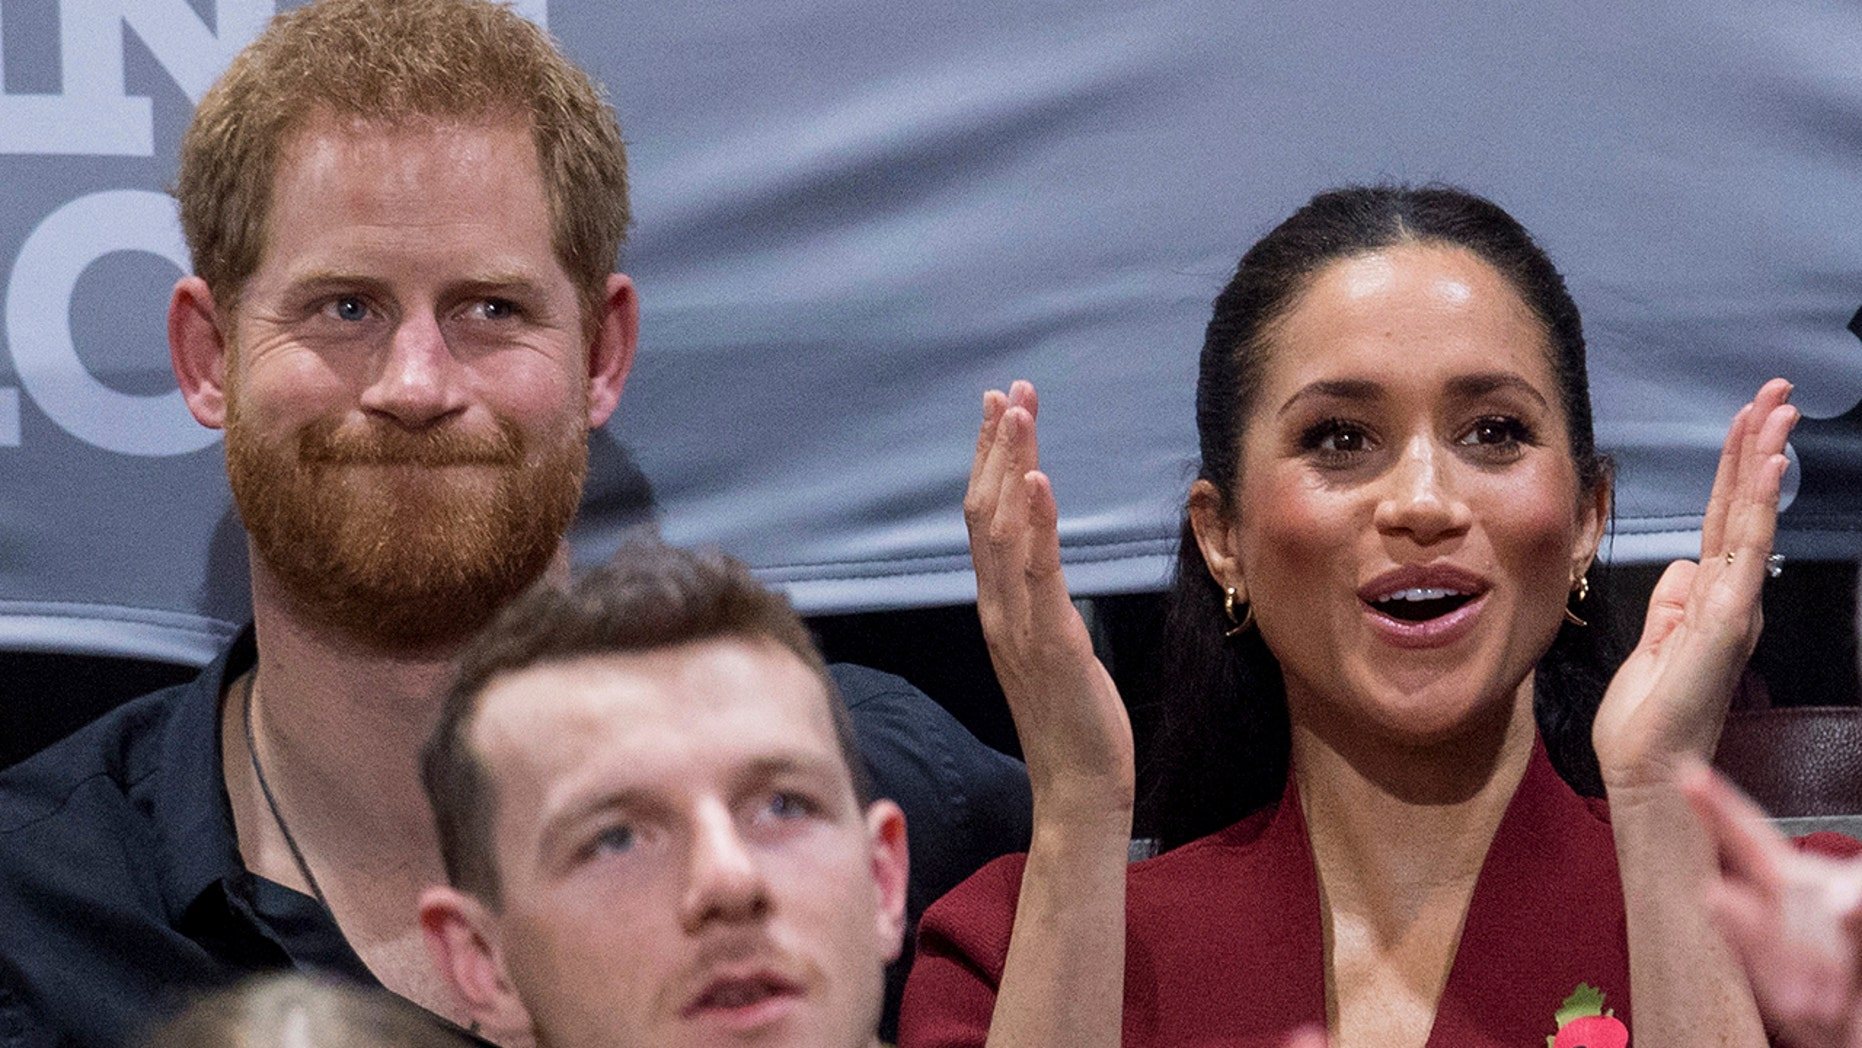 Britain's Prince Harry and Meghan, Duchess of Sussex applaud as they watch the wheelchair basketball final at The Invictus Games in Sydney, Australia, Saturday, Oct. 27, 2018. Prince Harry and his wife Meghan are on day twelve of their 16-day tour of Australia and the South Pacific. (AP Photo)